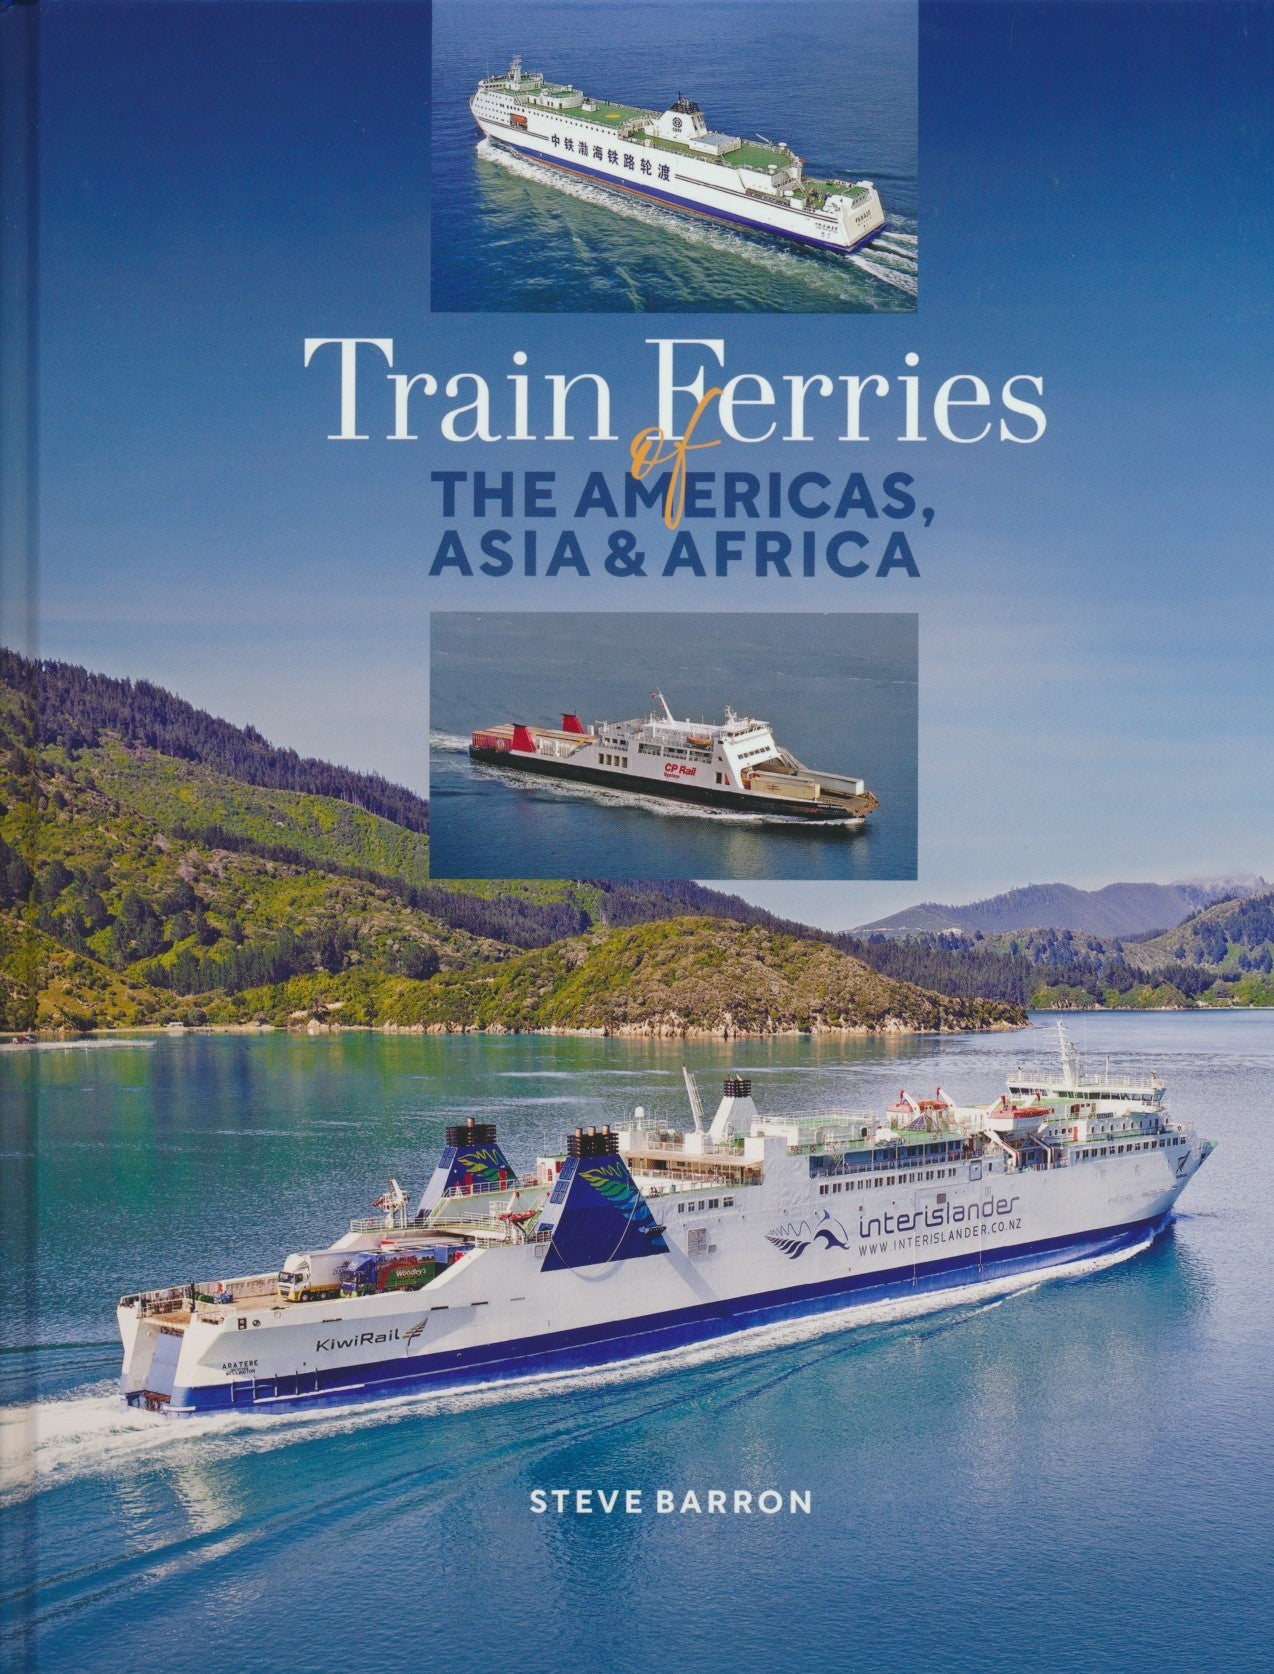 Train Ferries of the Americas, Asia & Africa